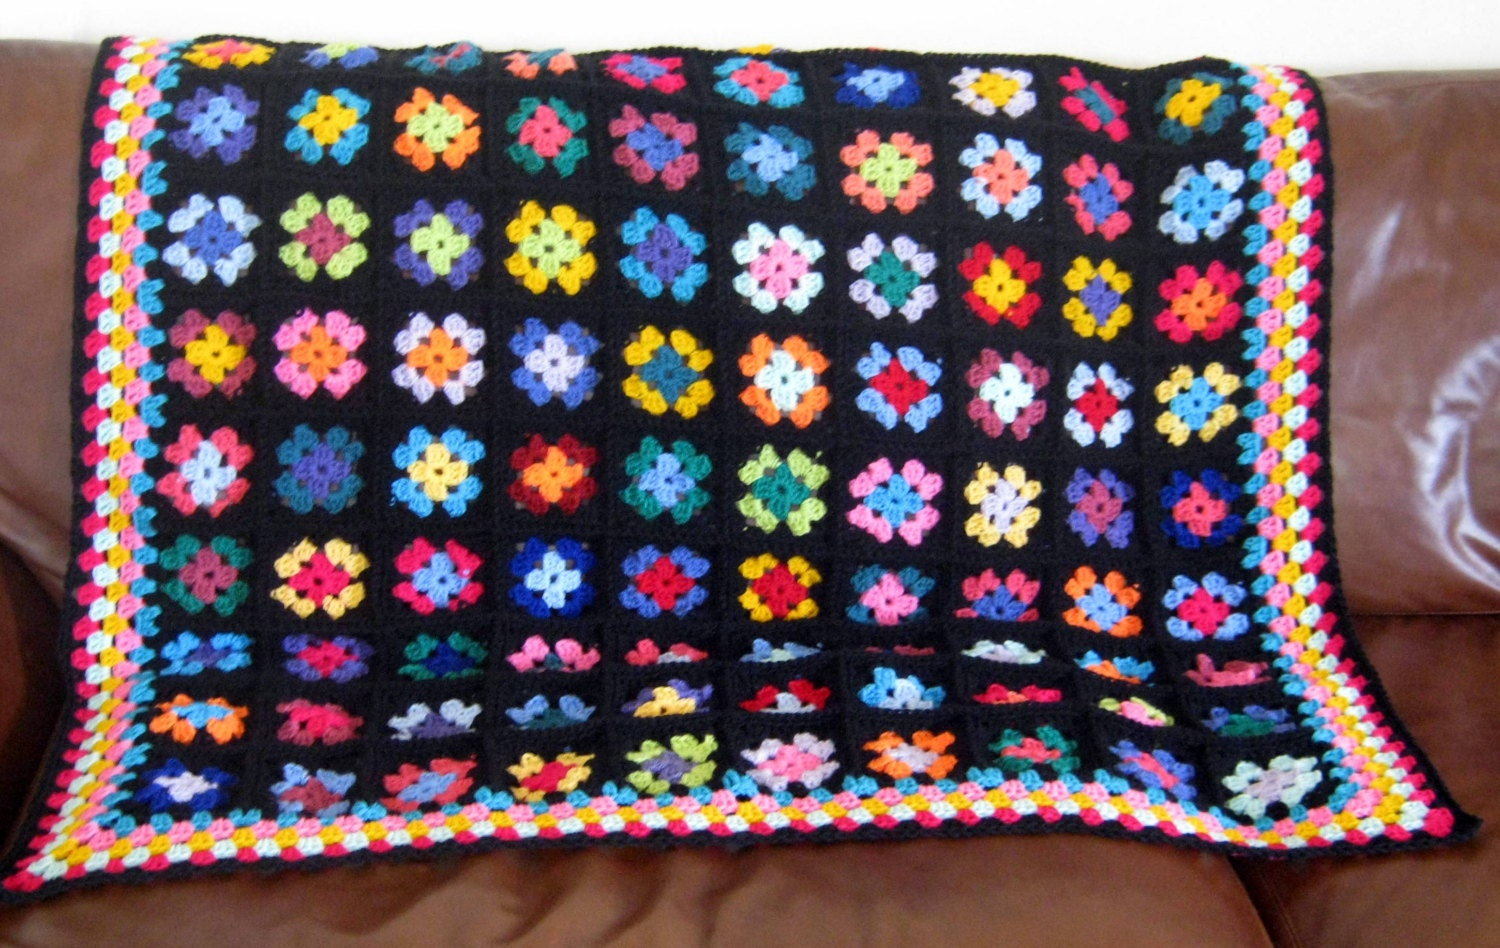 Ava Classic Traditional Black Crochet Granny Square Blanket Afghan Throw - Thesunroomuk